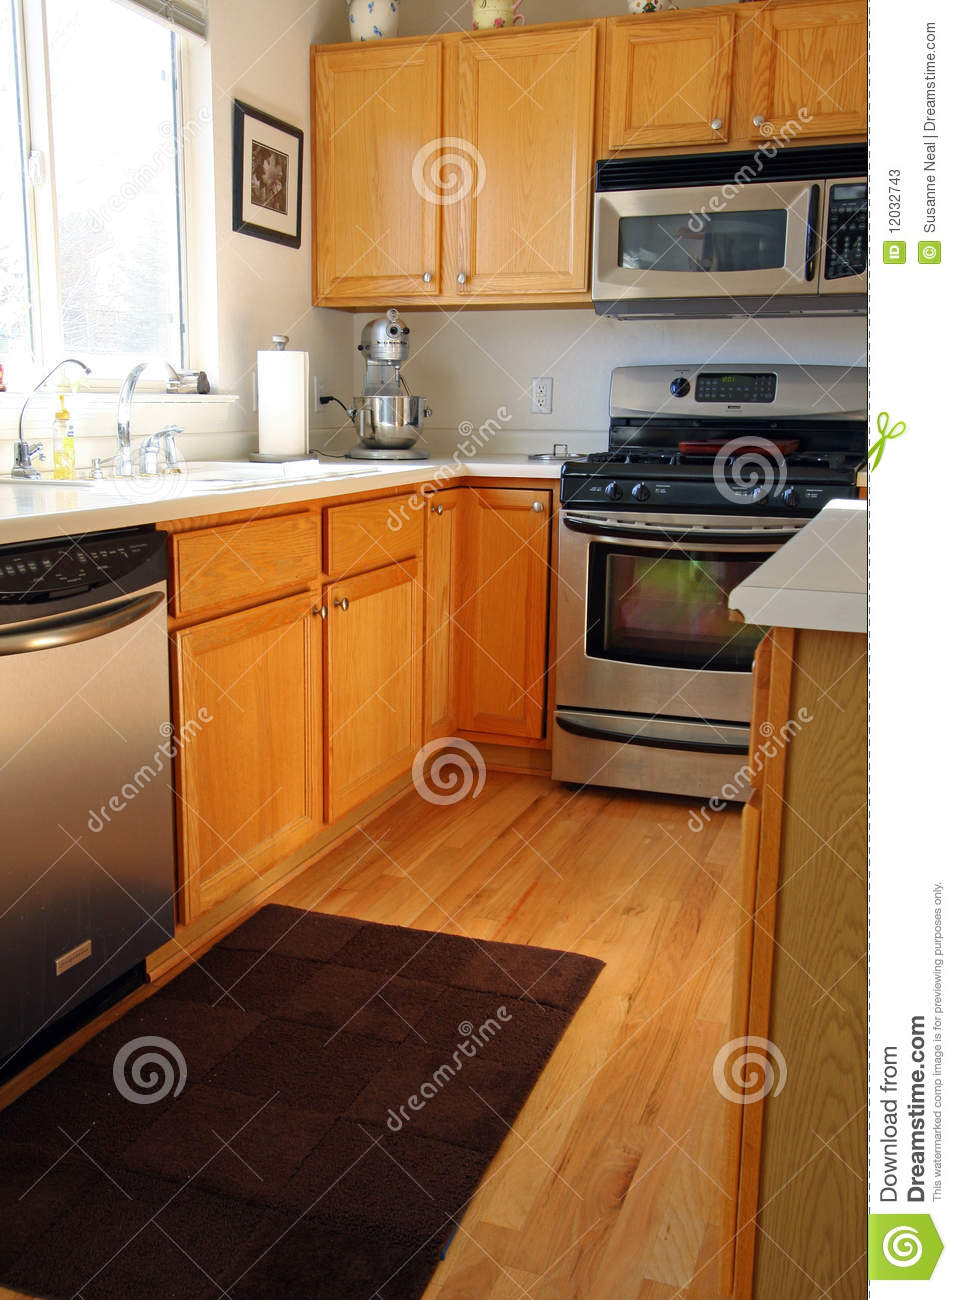 Modern kitchen cabinets in oak stock image image 12032743 for Contemporary oak kitchen cabinets